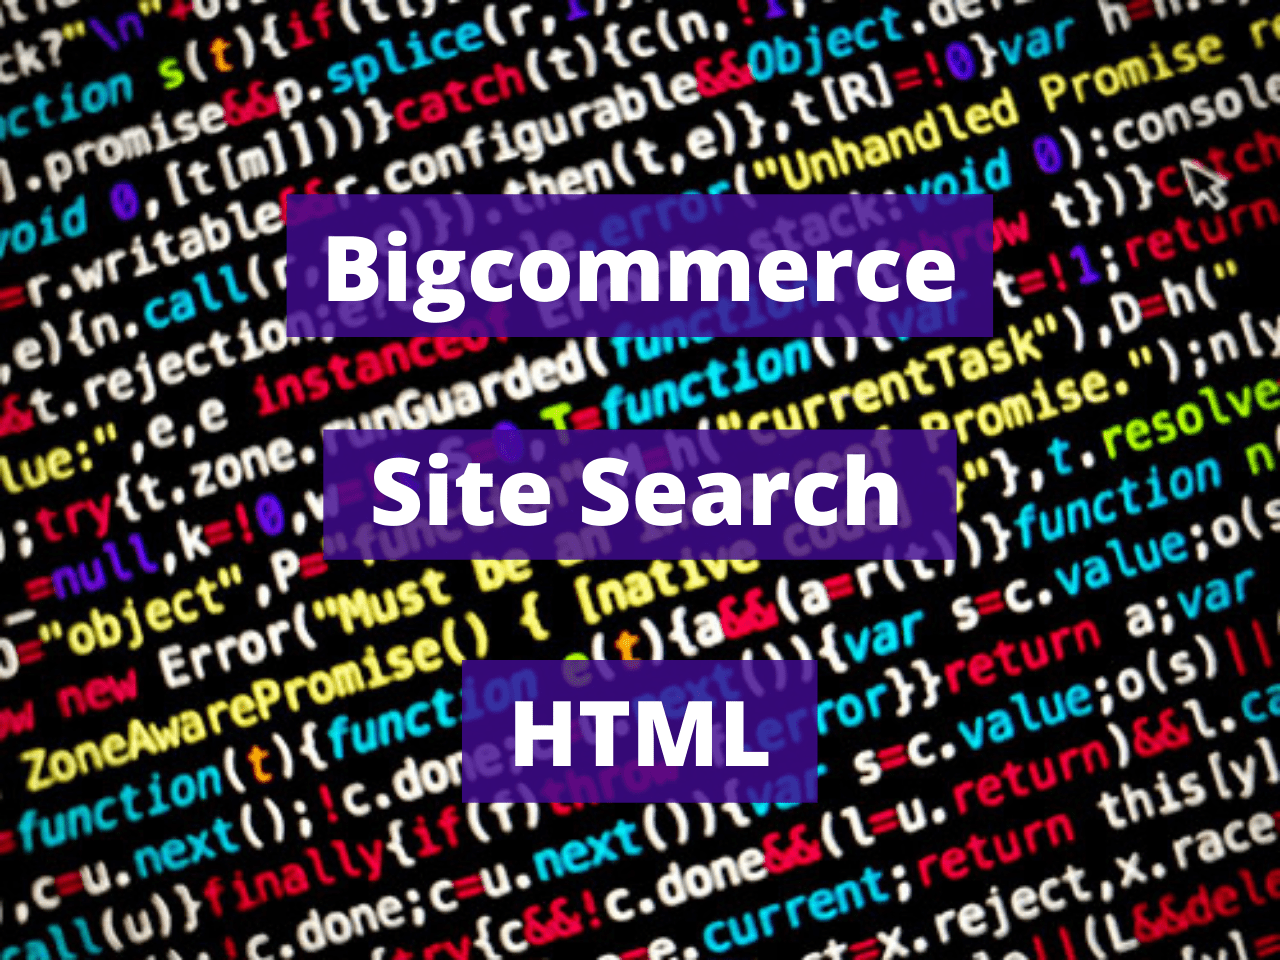 Bigcommerce Site Search HTML